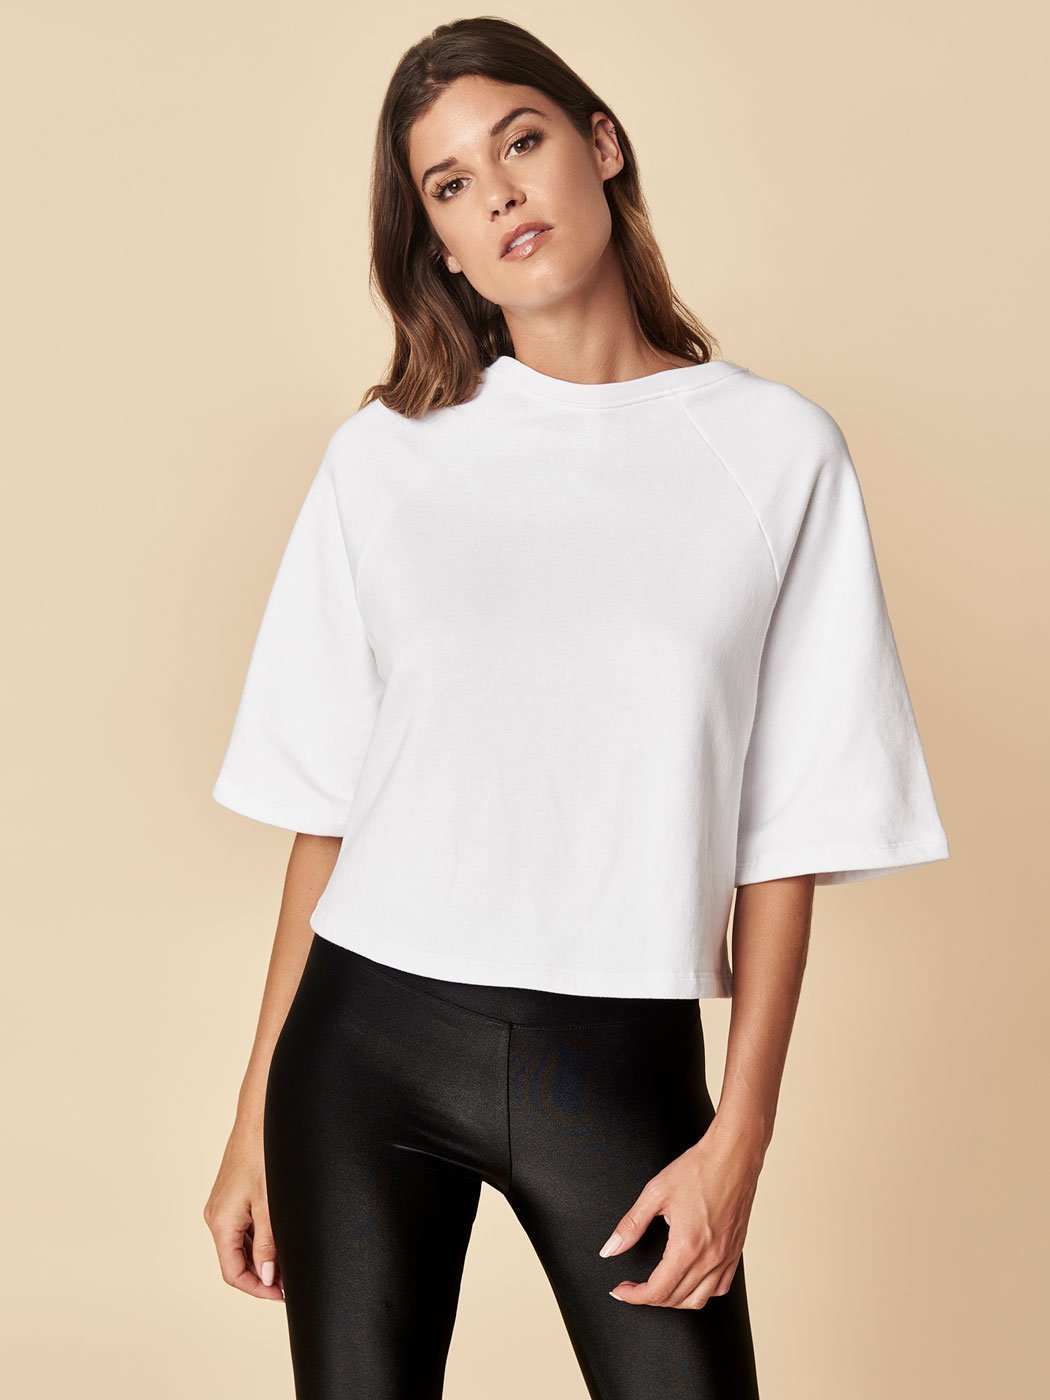 Off Duty Boxy Sweatshirt White, Final Sale